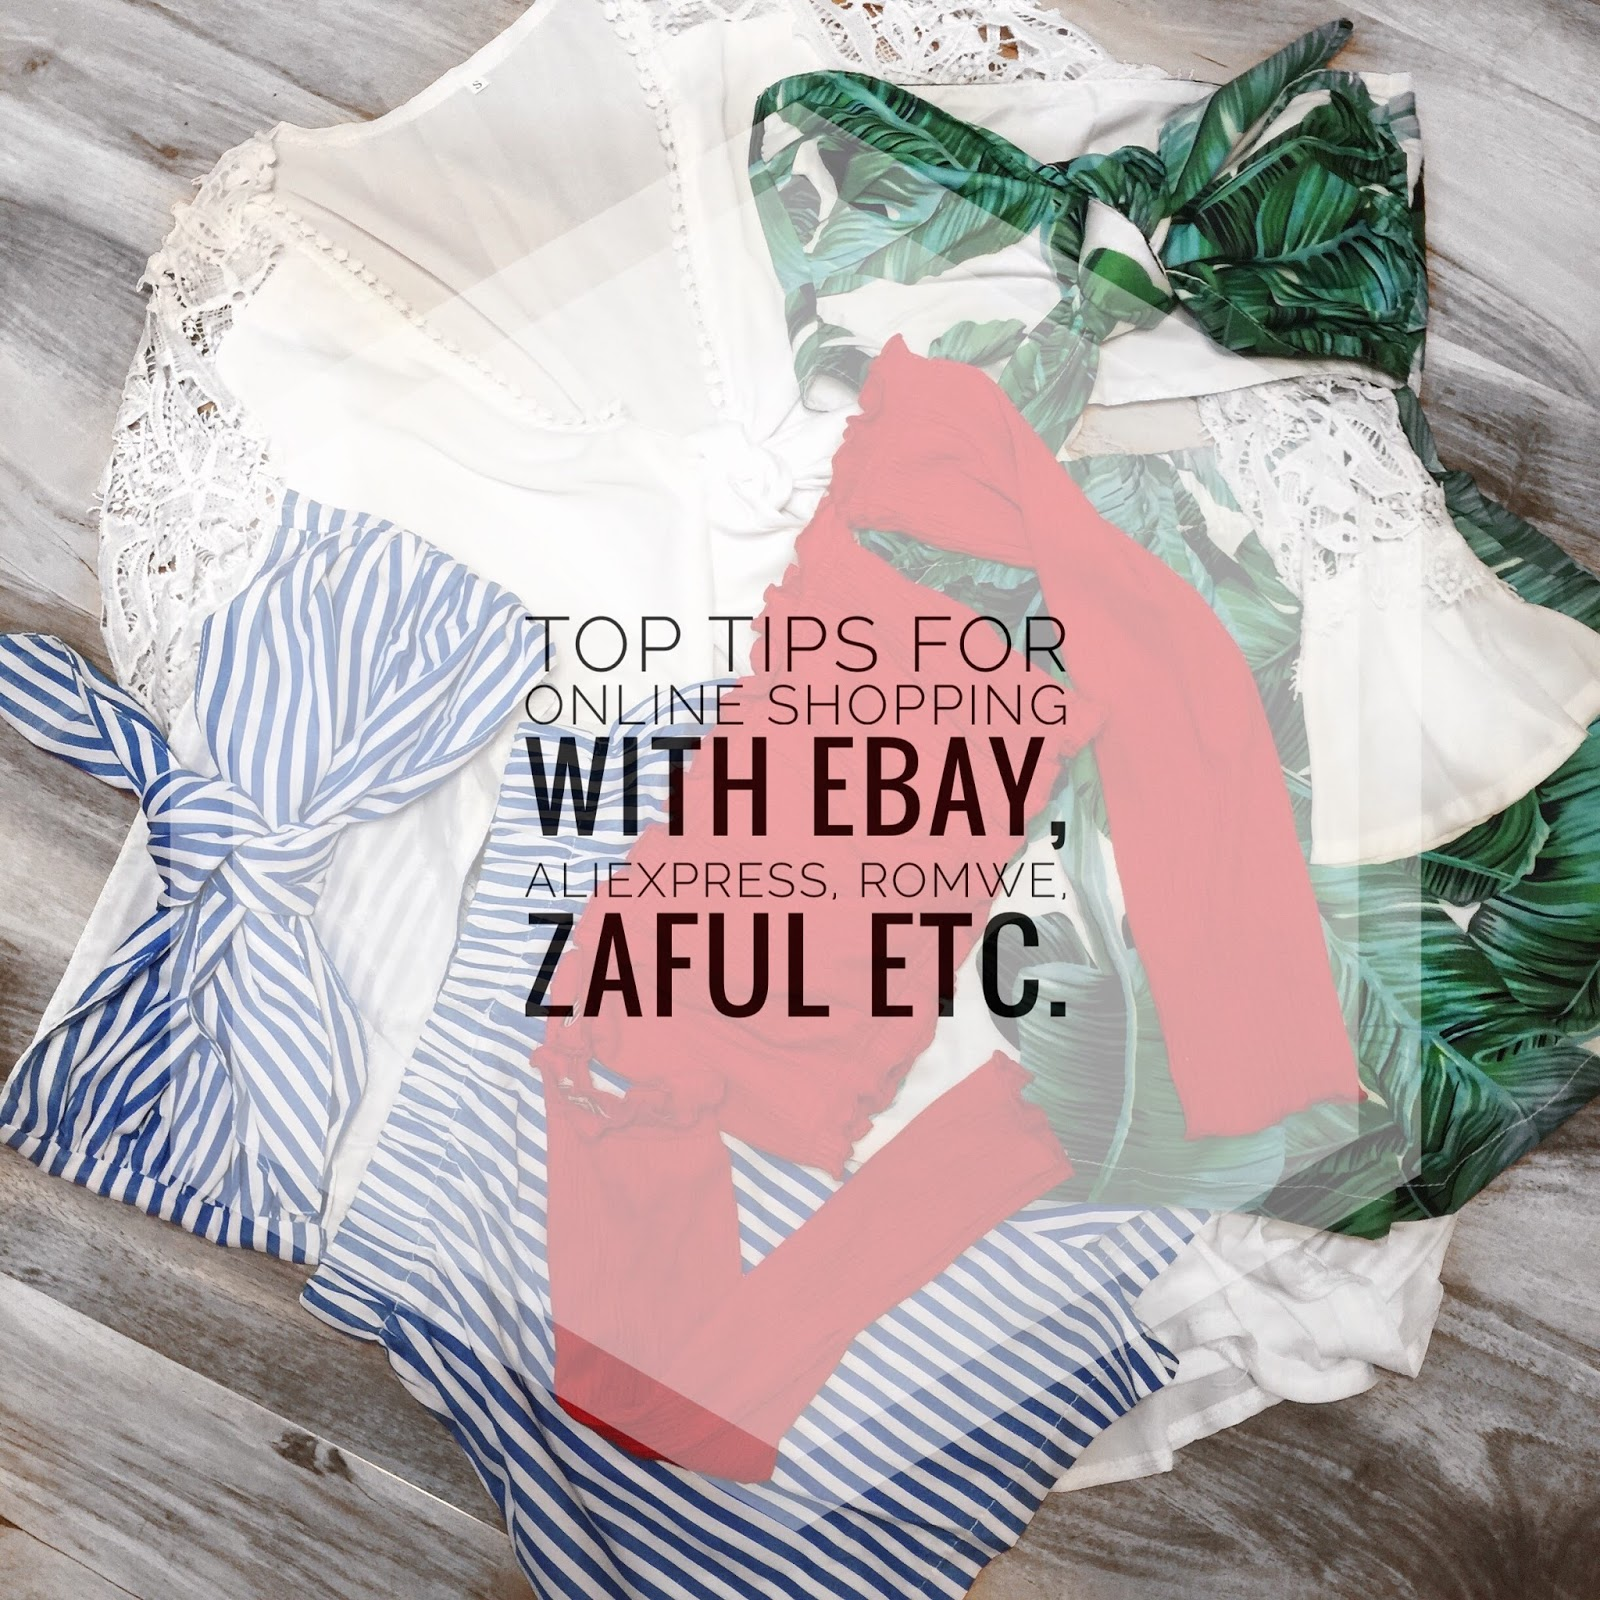 c27dd66cf4 Top tips for shopping with eBay